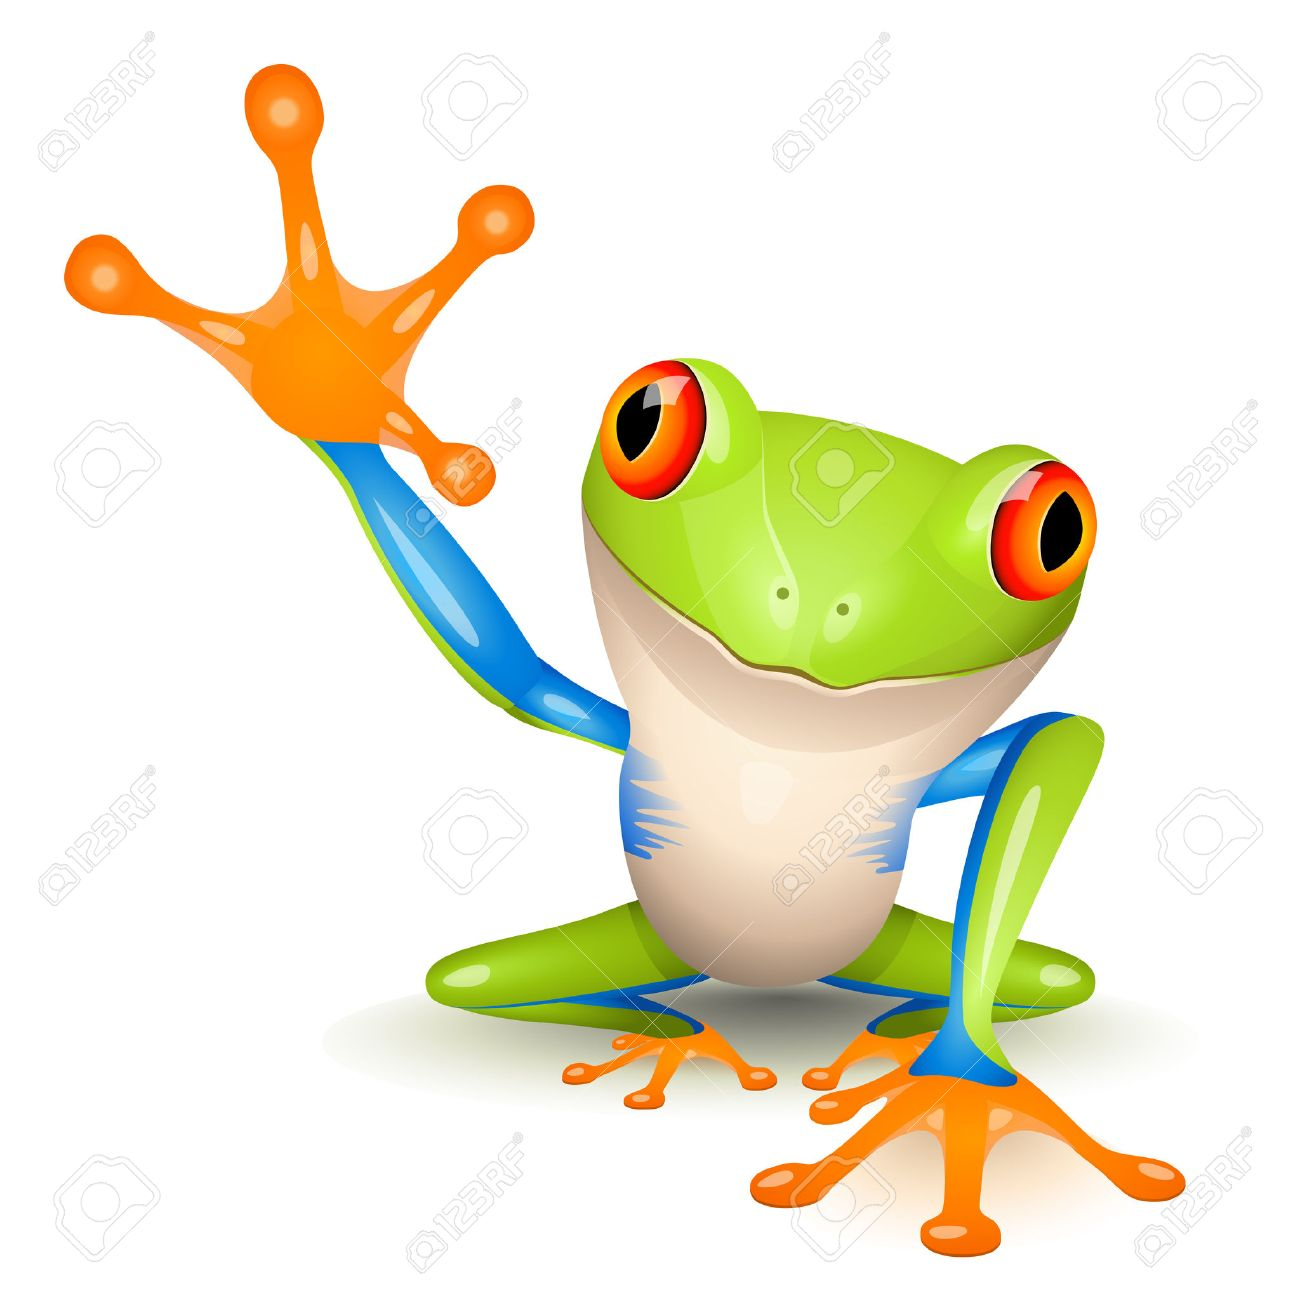 green tree frog images u0026 stock pictures royalty free green tree